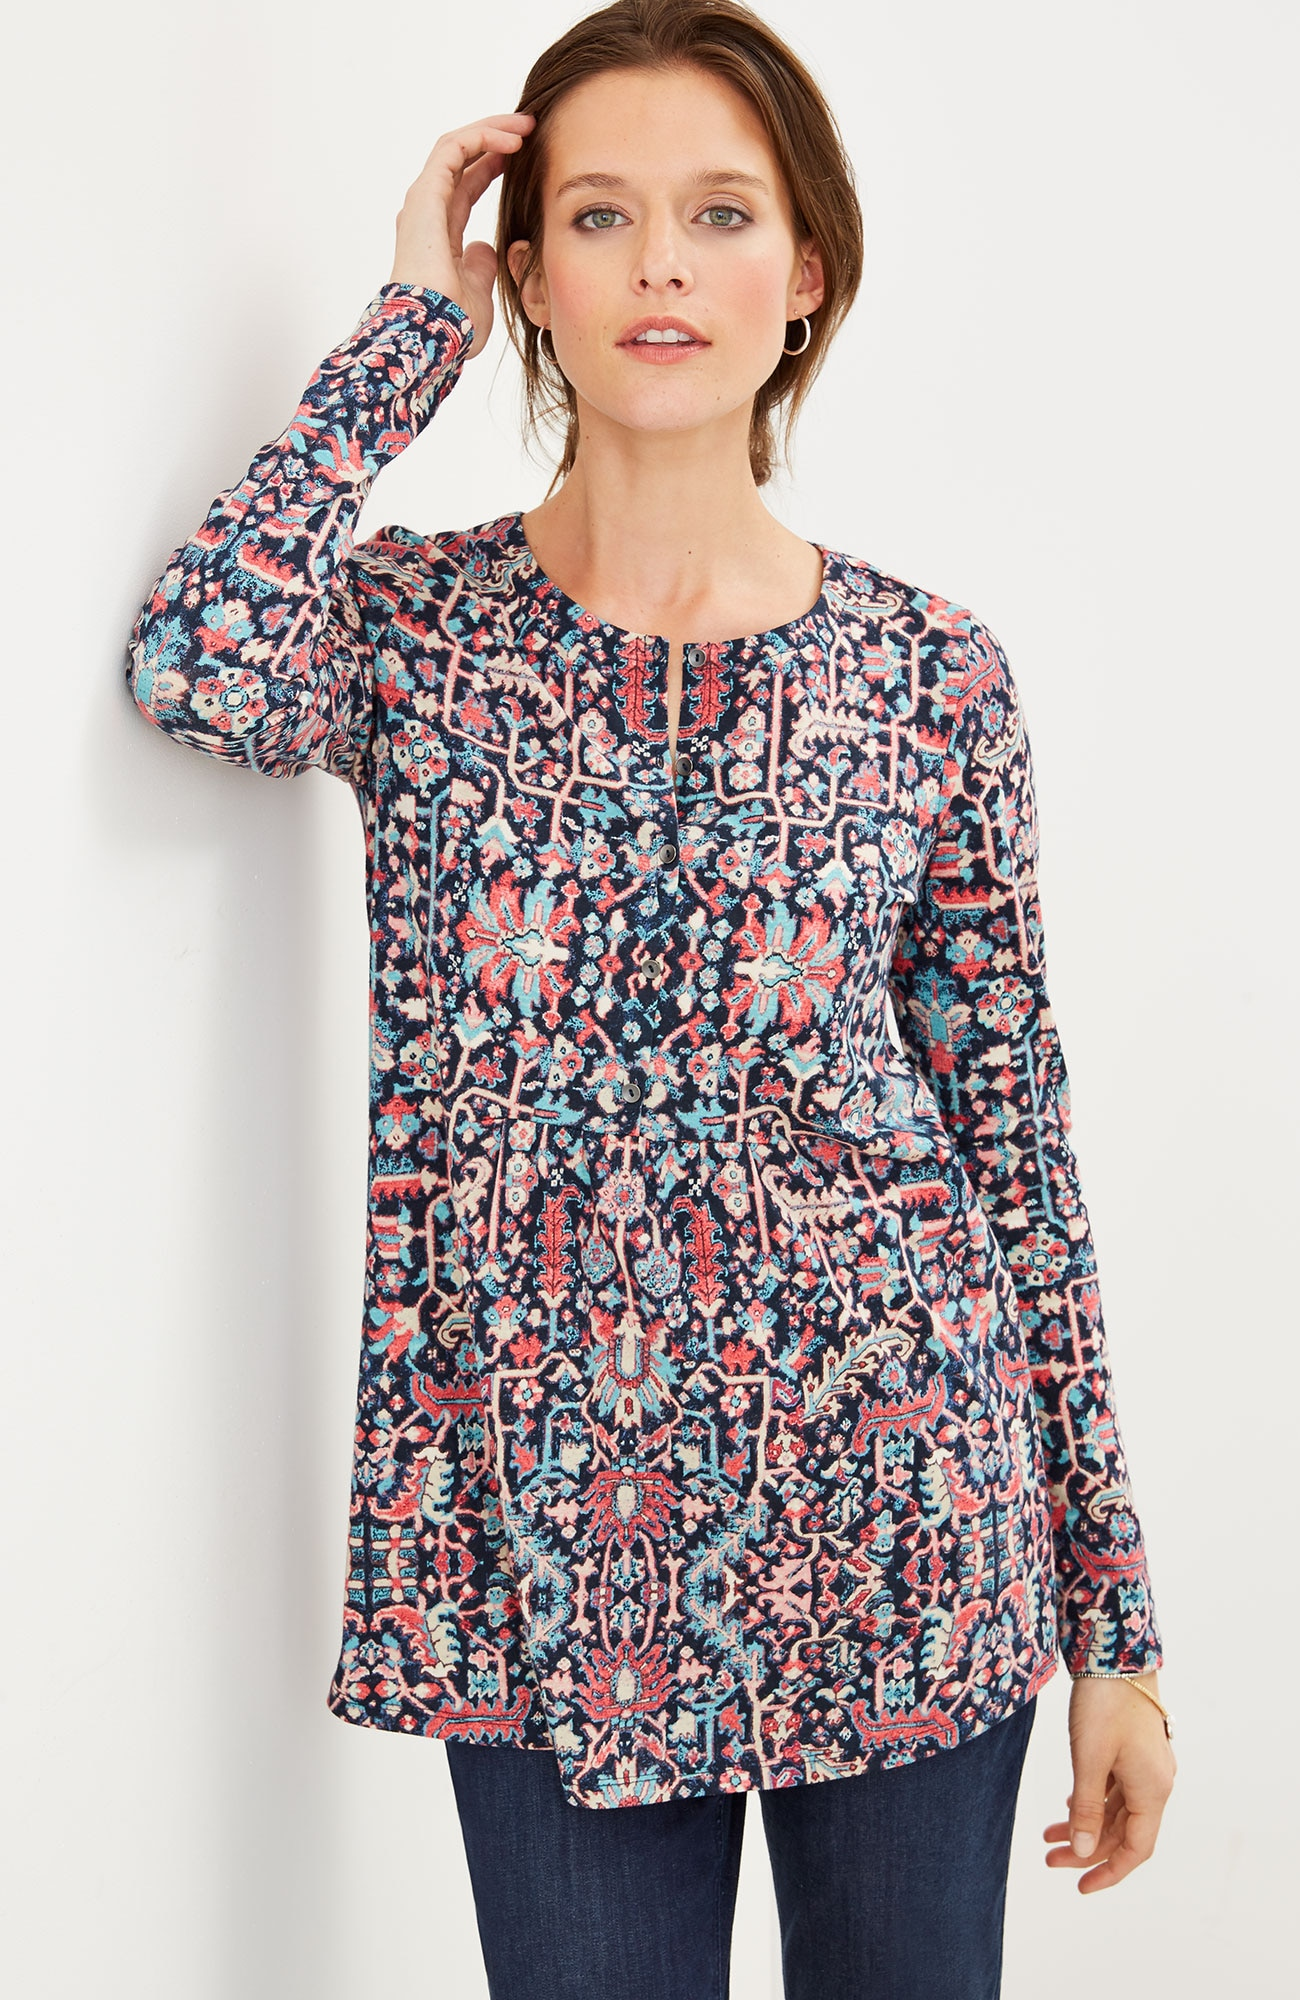 tapestry-print knit top